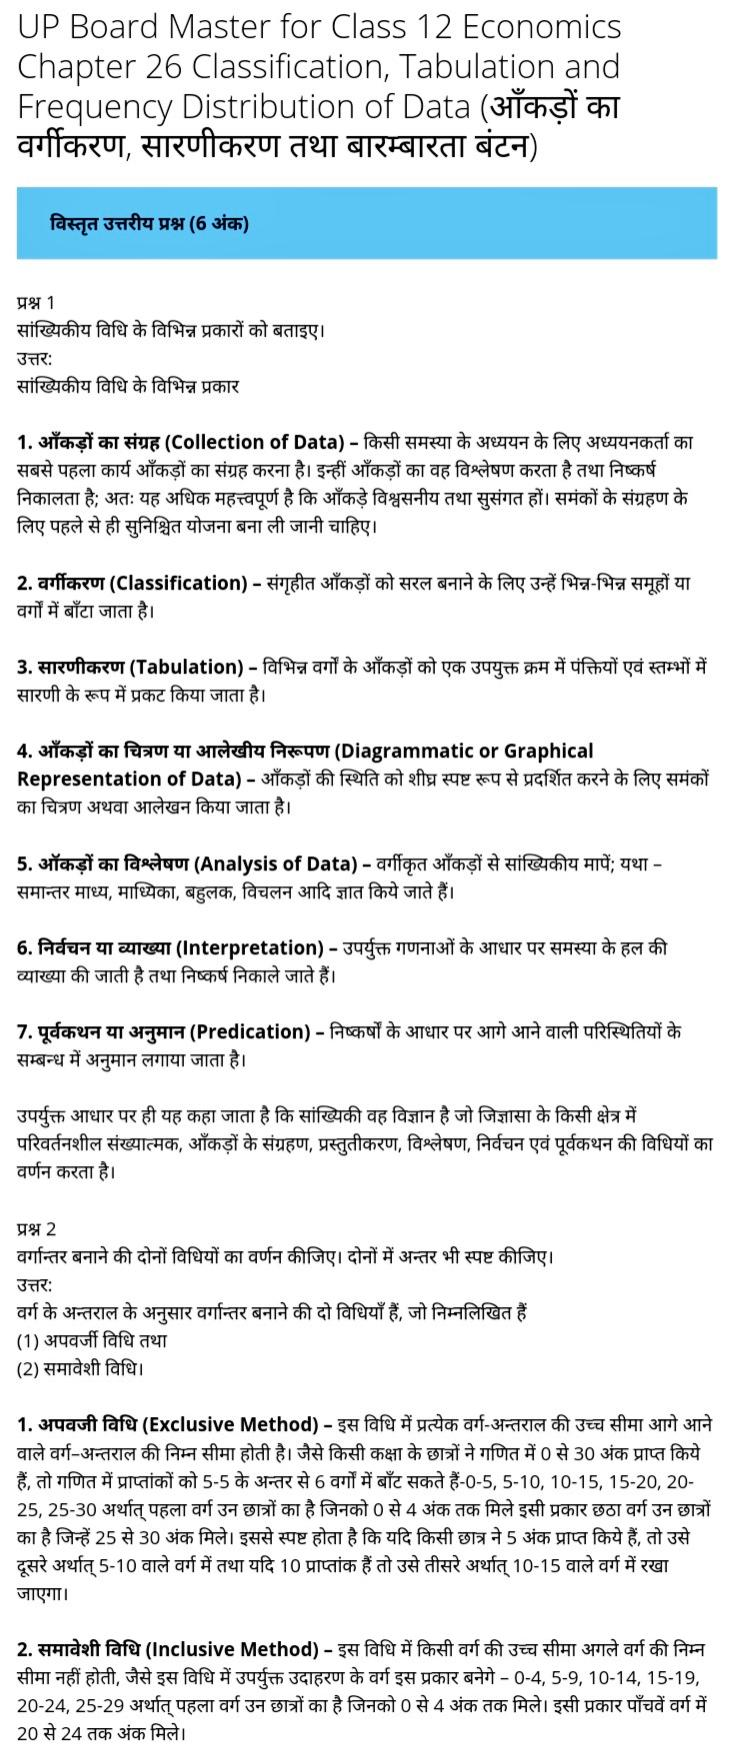 UP Board Solutions for Class 12 Economics Chapter 26 Classification, Tabulation and Frequency Distribution of Data (आँकड़ों का वर्गीकरण, सारणीकरण तथा बारम्बारता बंटन)